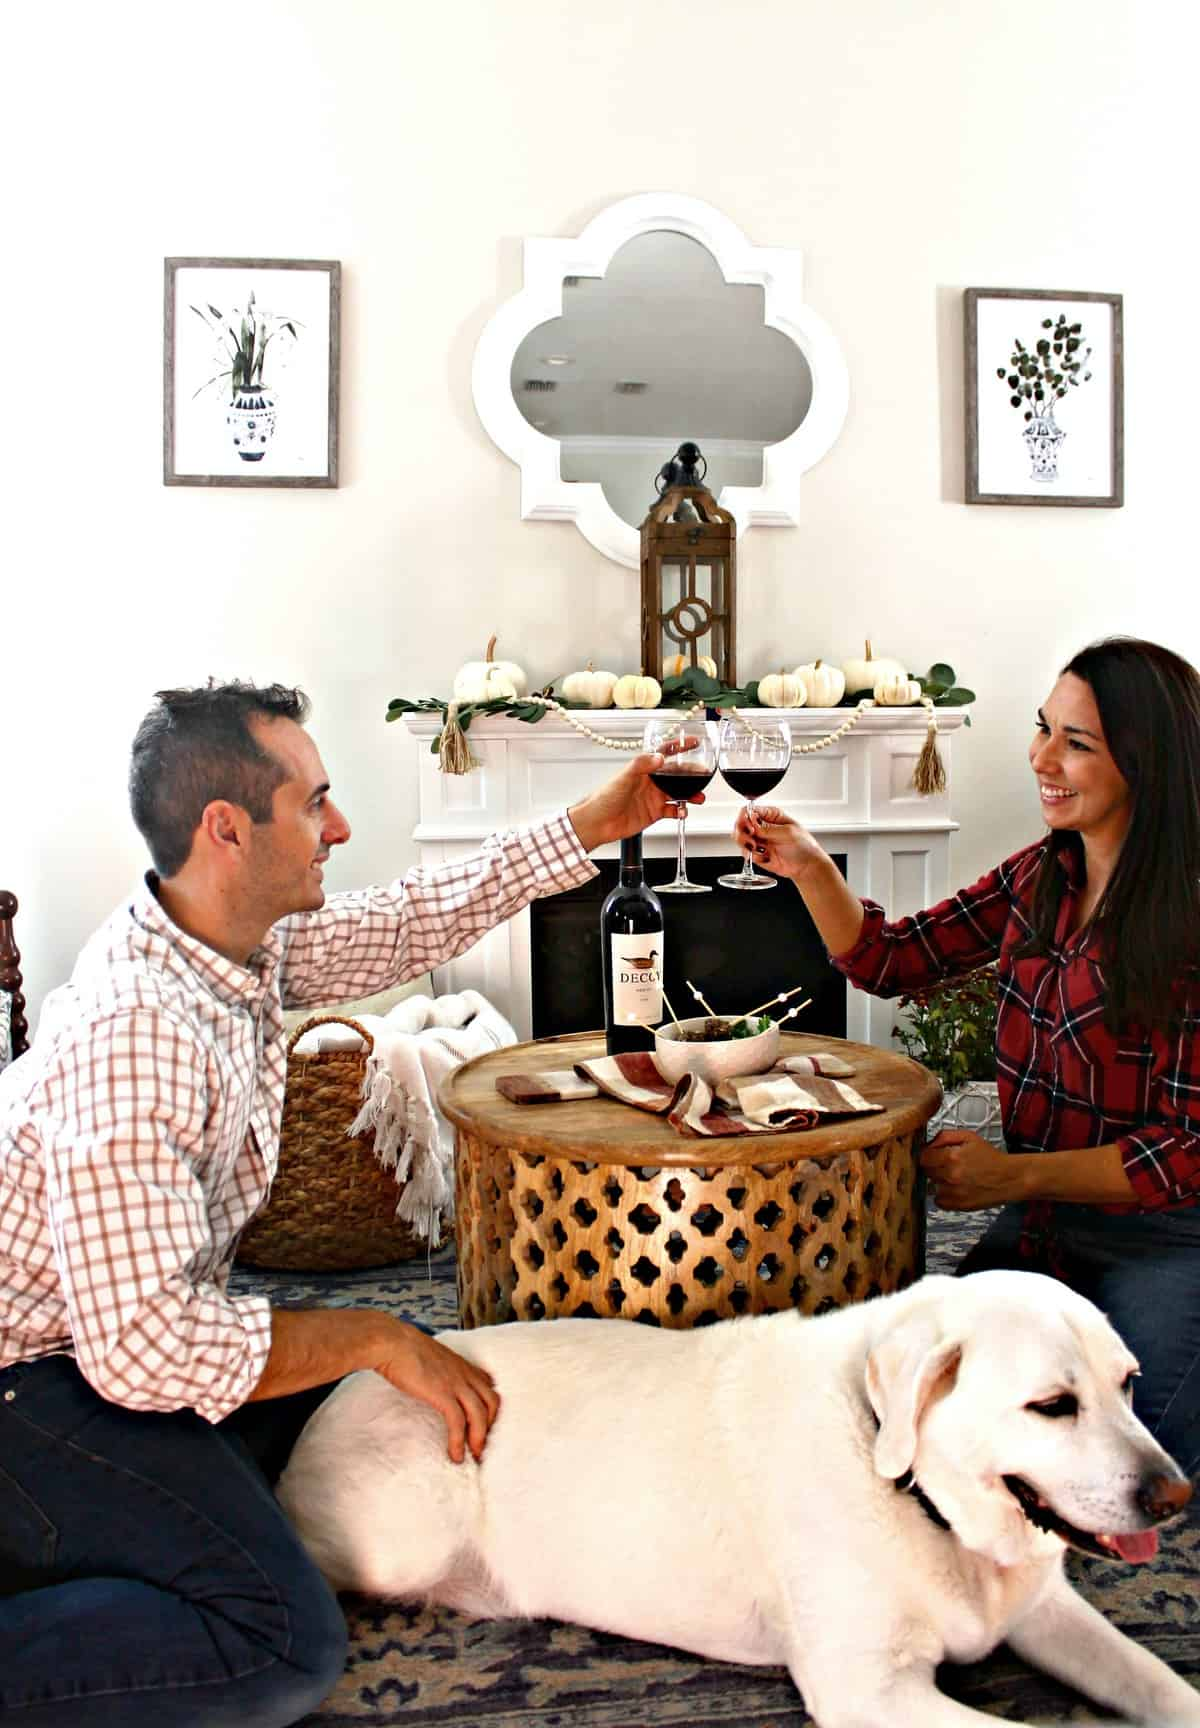 Man and woman toasting with wine in living room with dog.